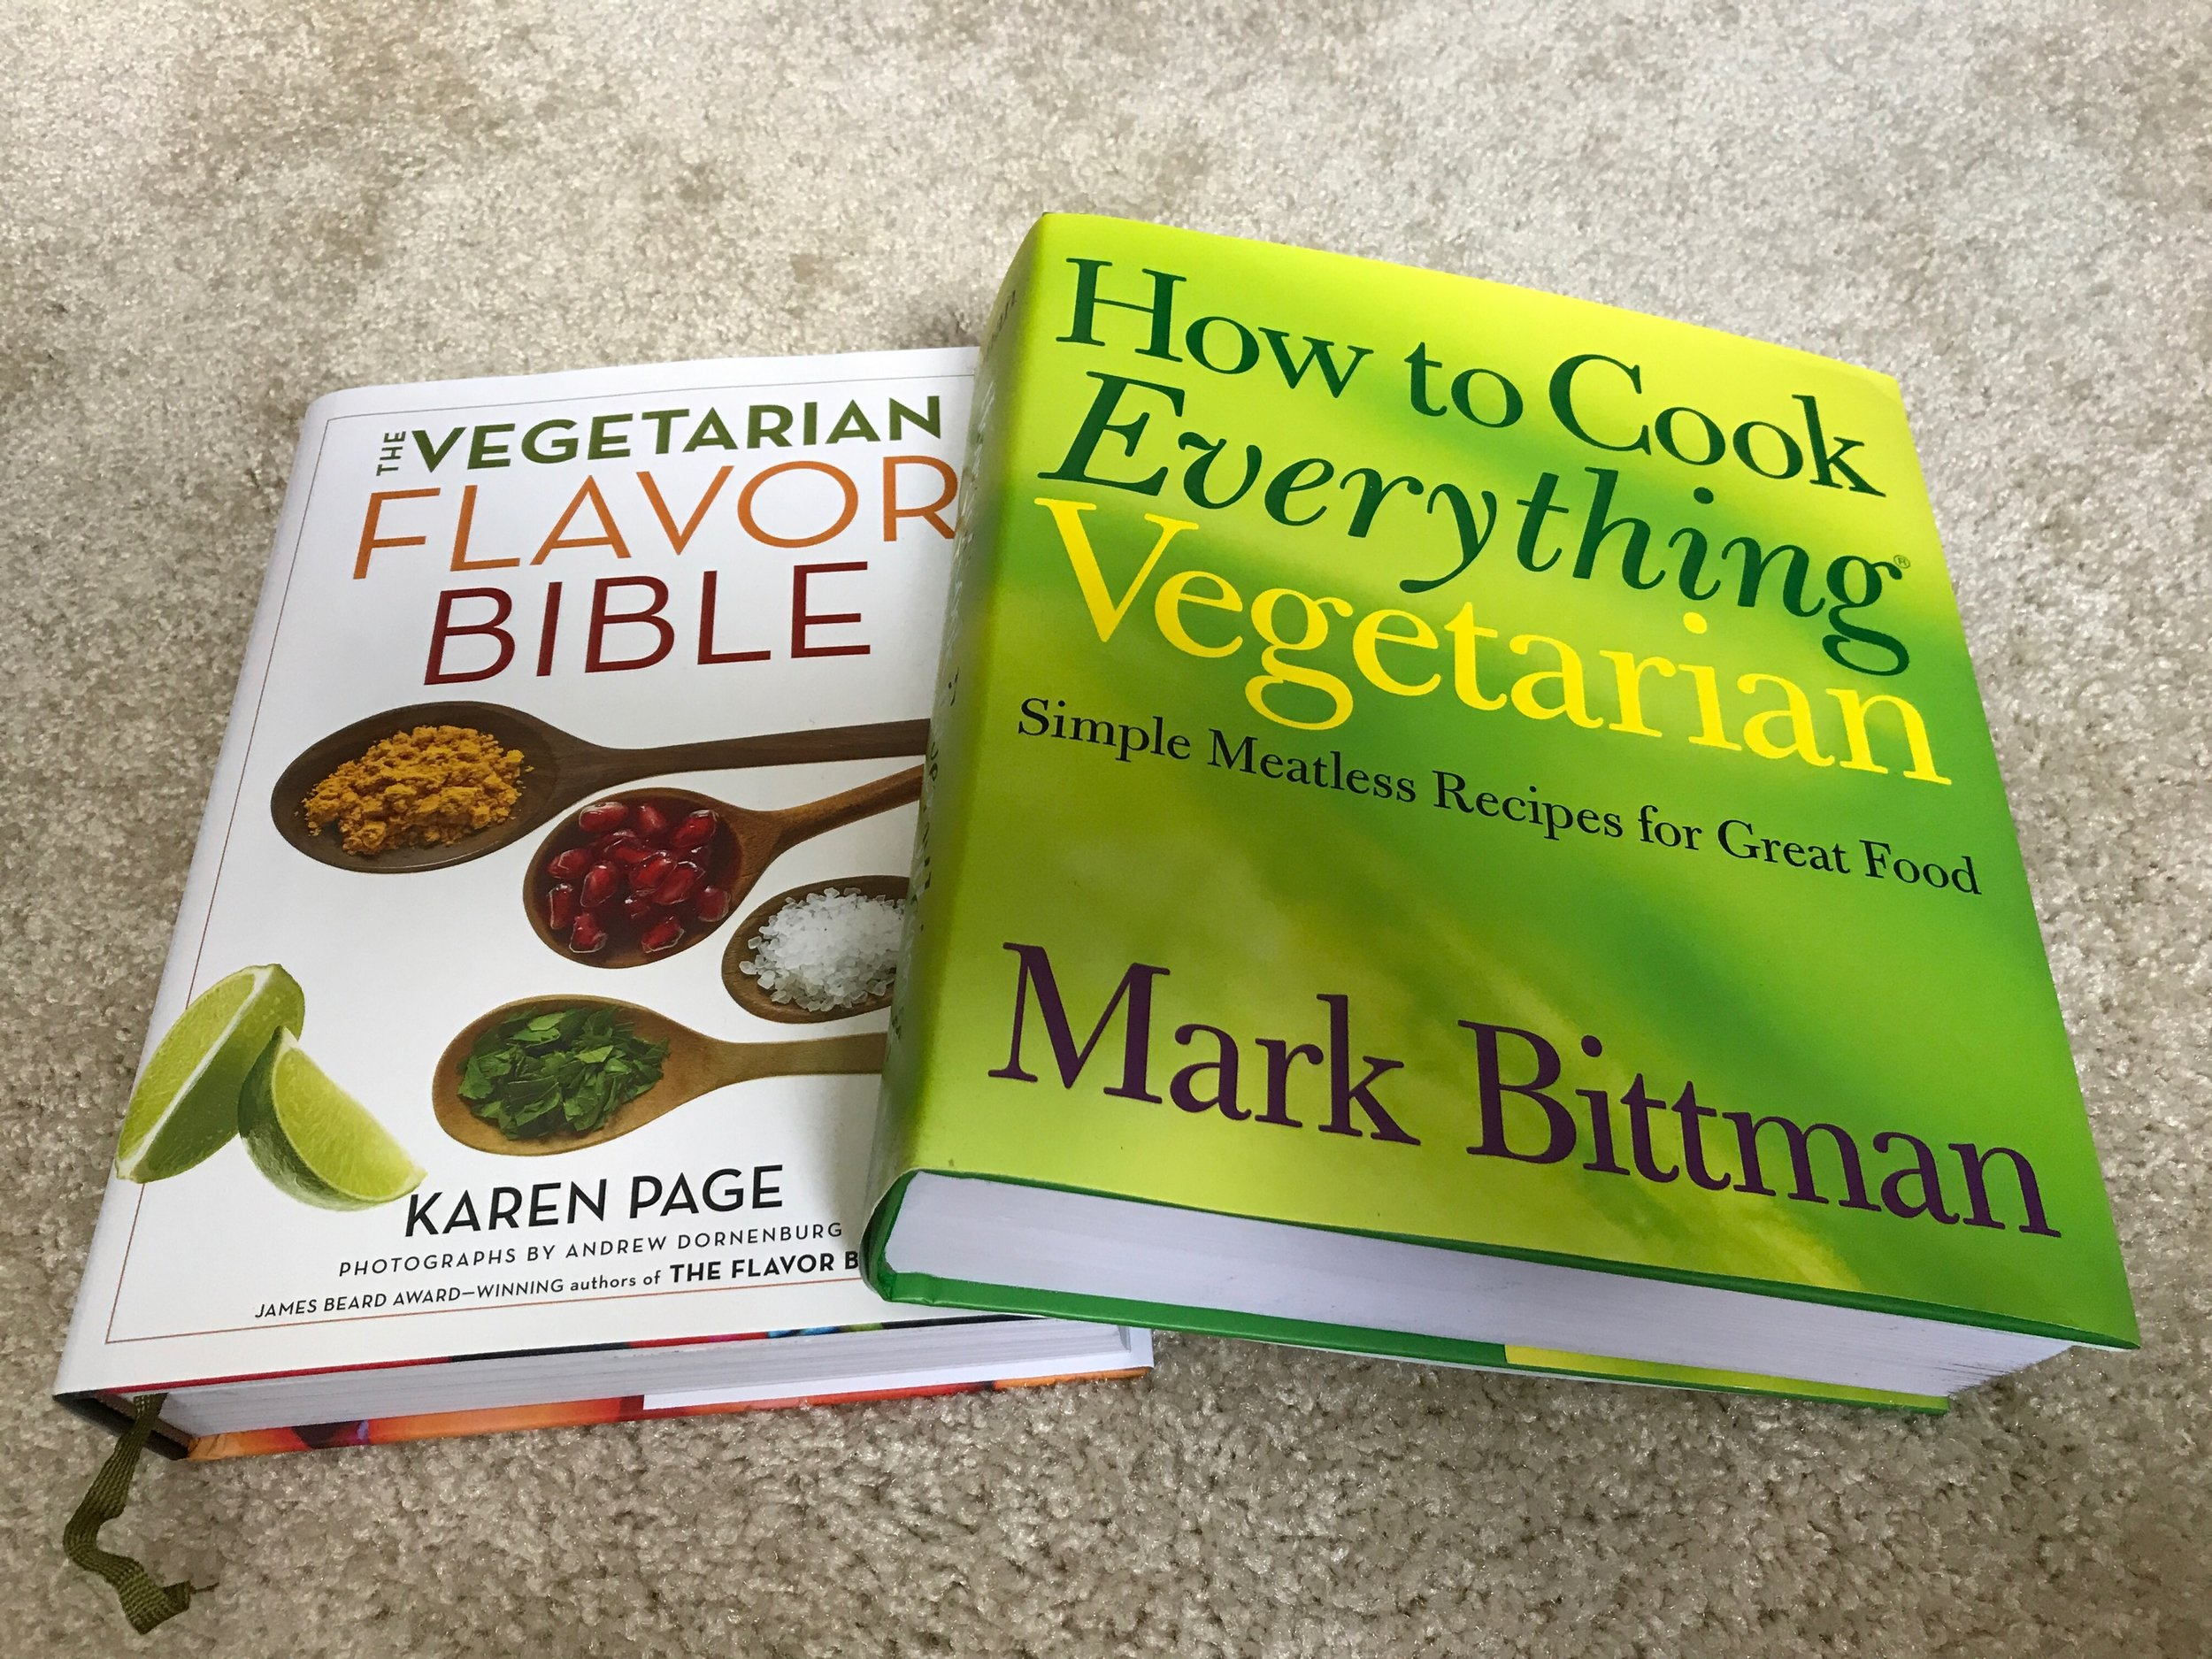 The best two books for starting out - How to Cook Everything Vegetarian;Literally any dish you could wish to make is catalogued in this encyclopedia The Vegetarian Flavor BibleEvery food and what seasonings and foods it pairs with. Perfect for those wanting to create their own dishes